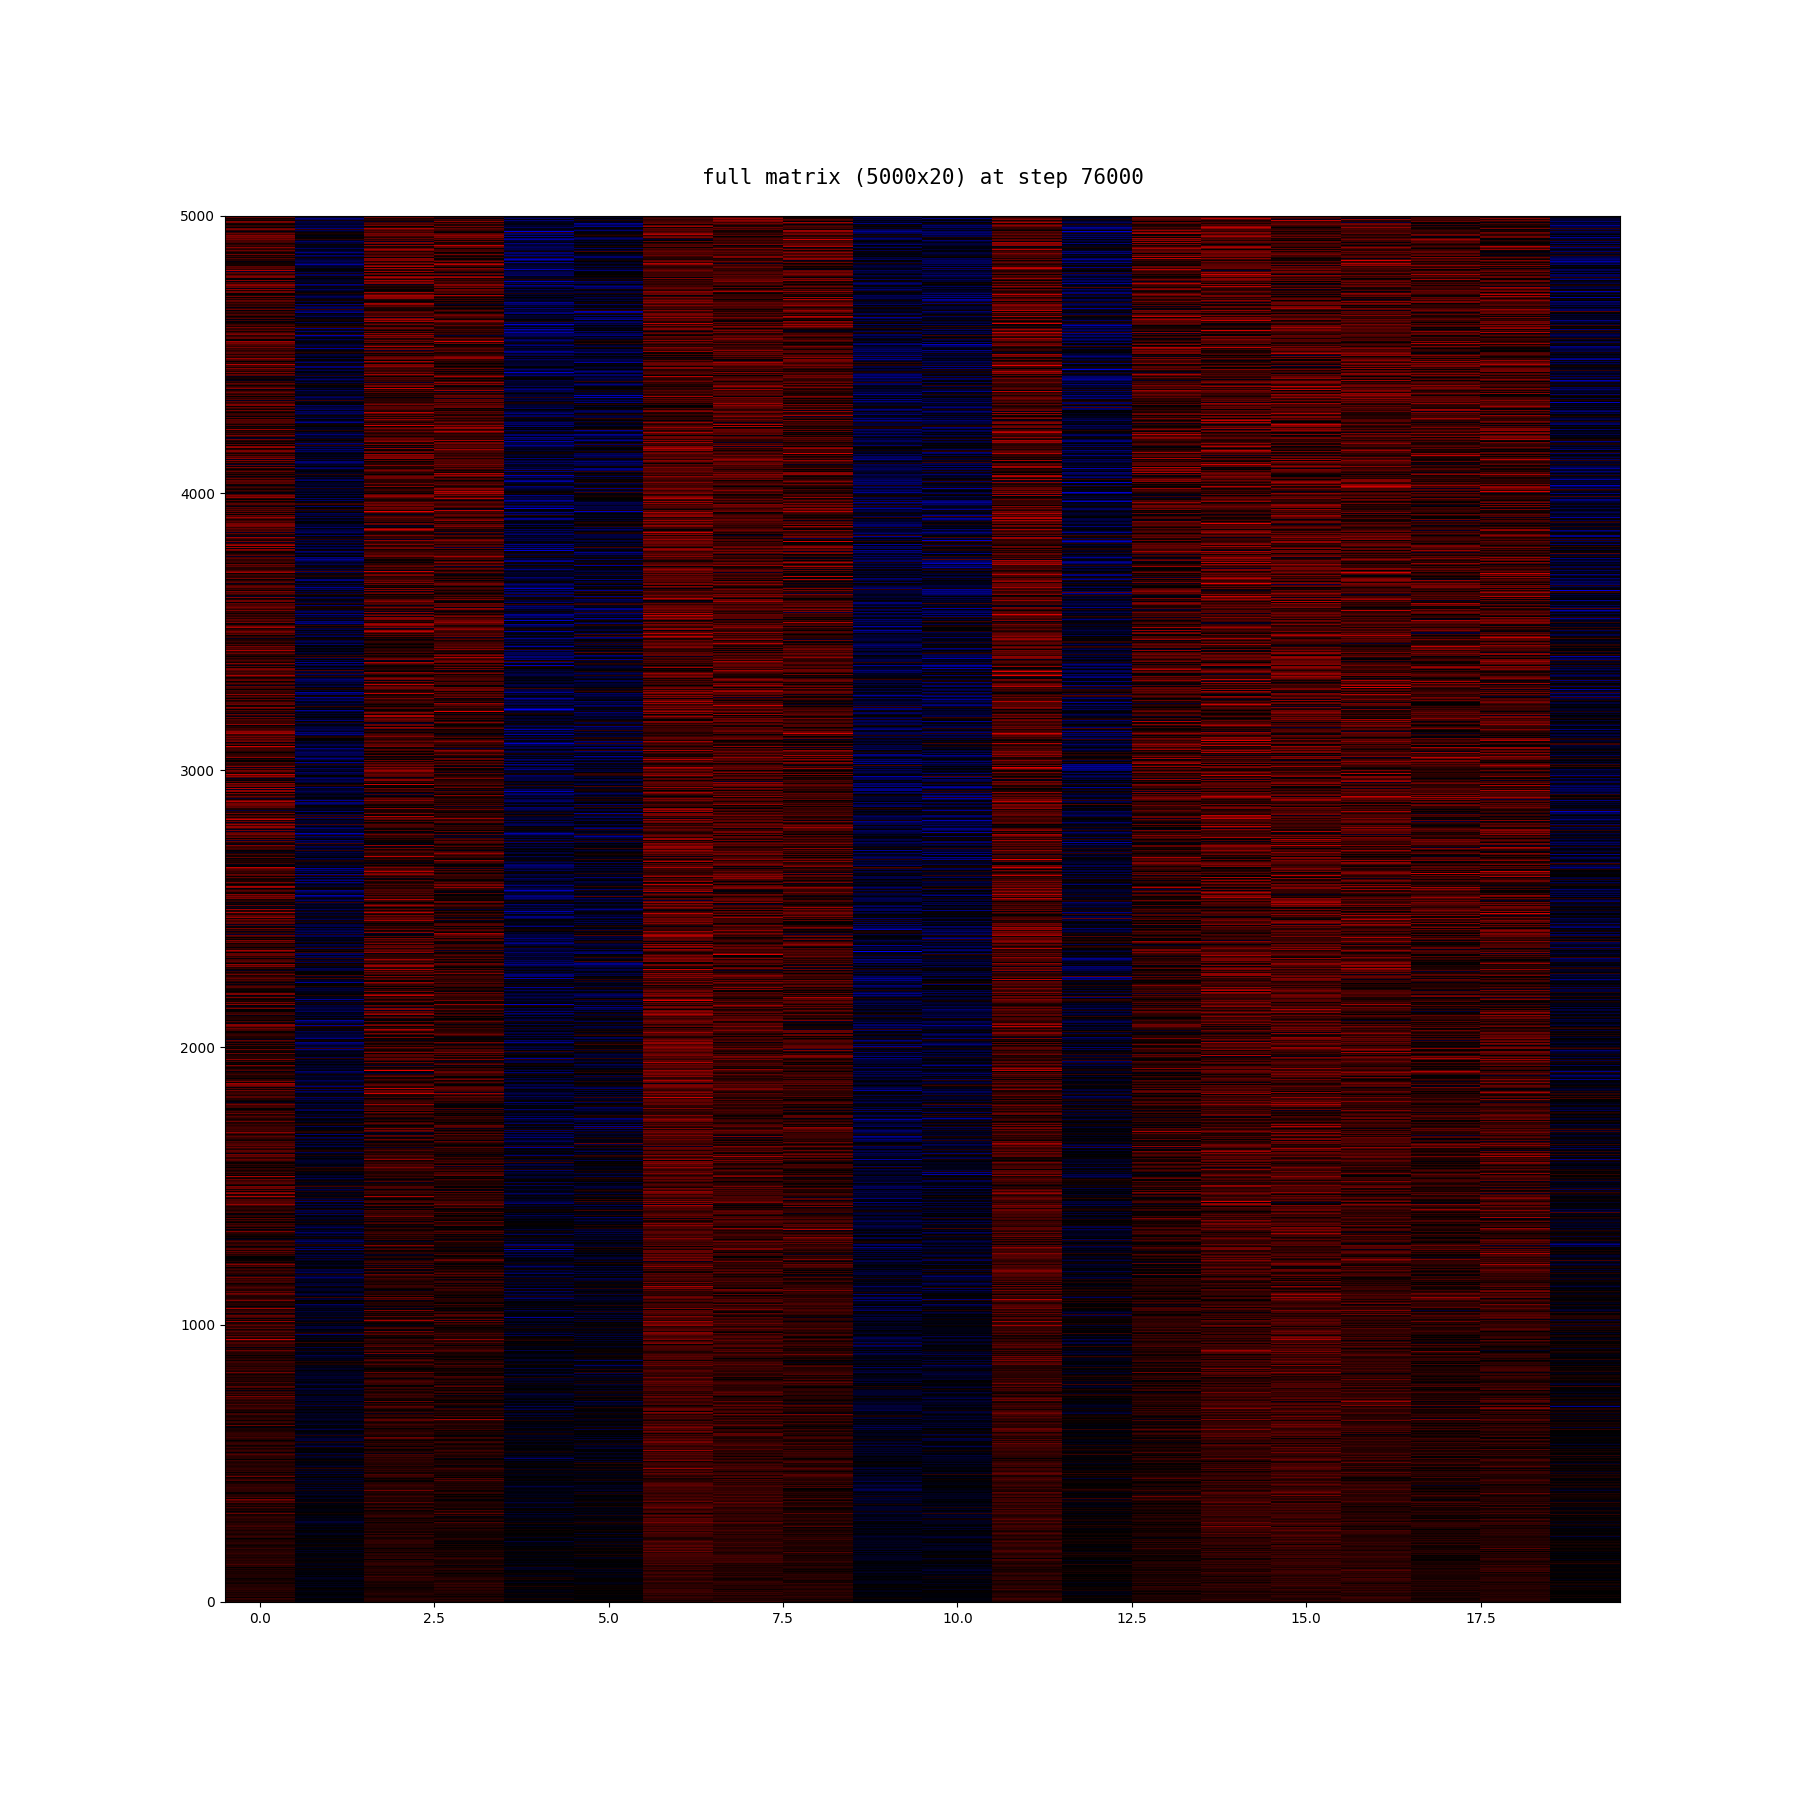 algoliterary_encounter/word2vec/plots/full-matrix/frankenstein-full-matrix-at-step_76000.png